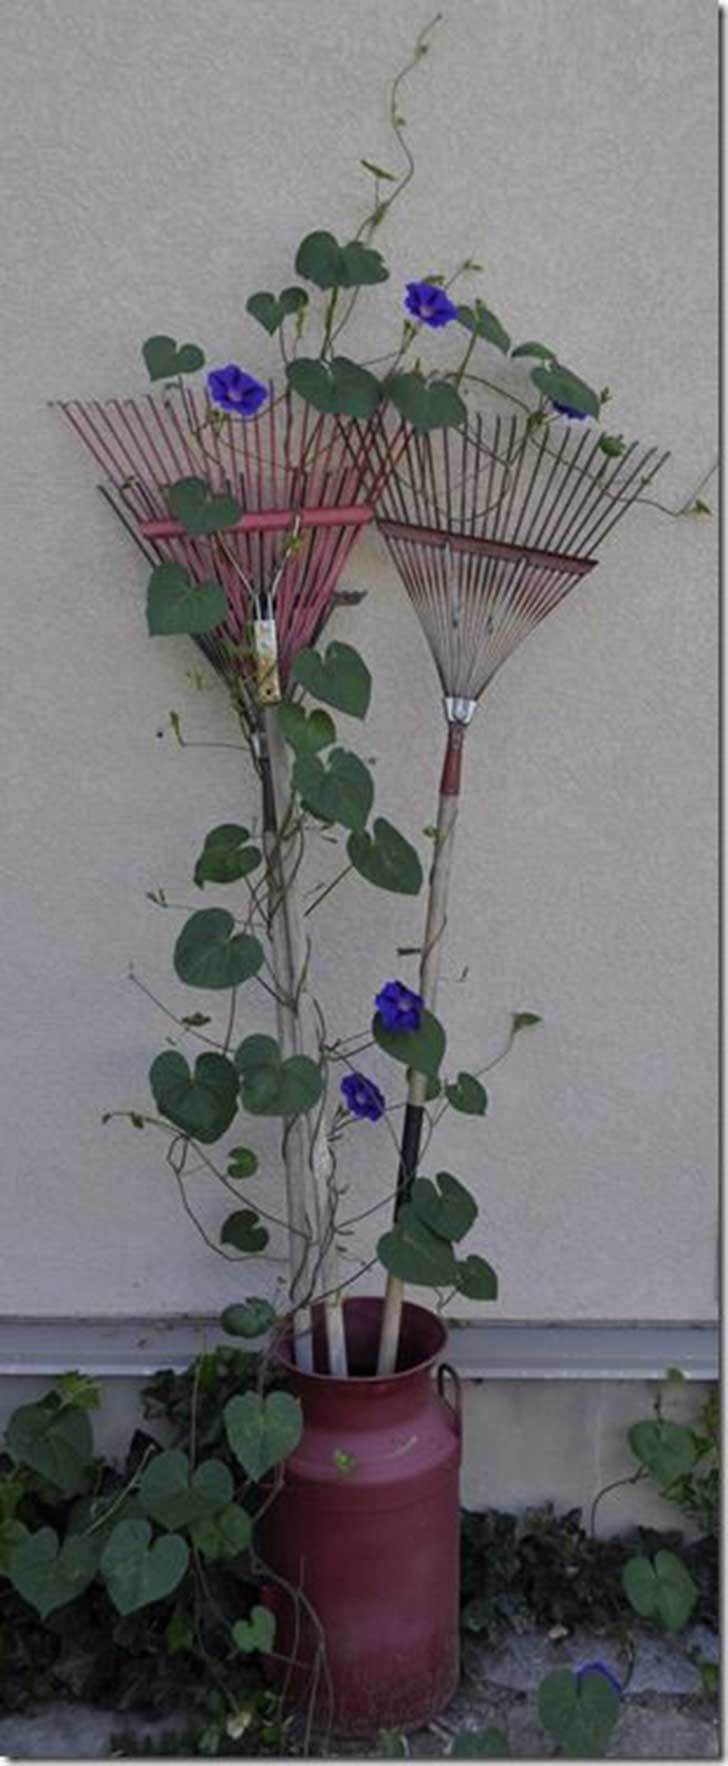 decoration ideas from an old rake10